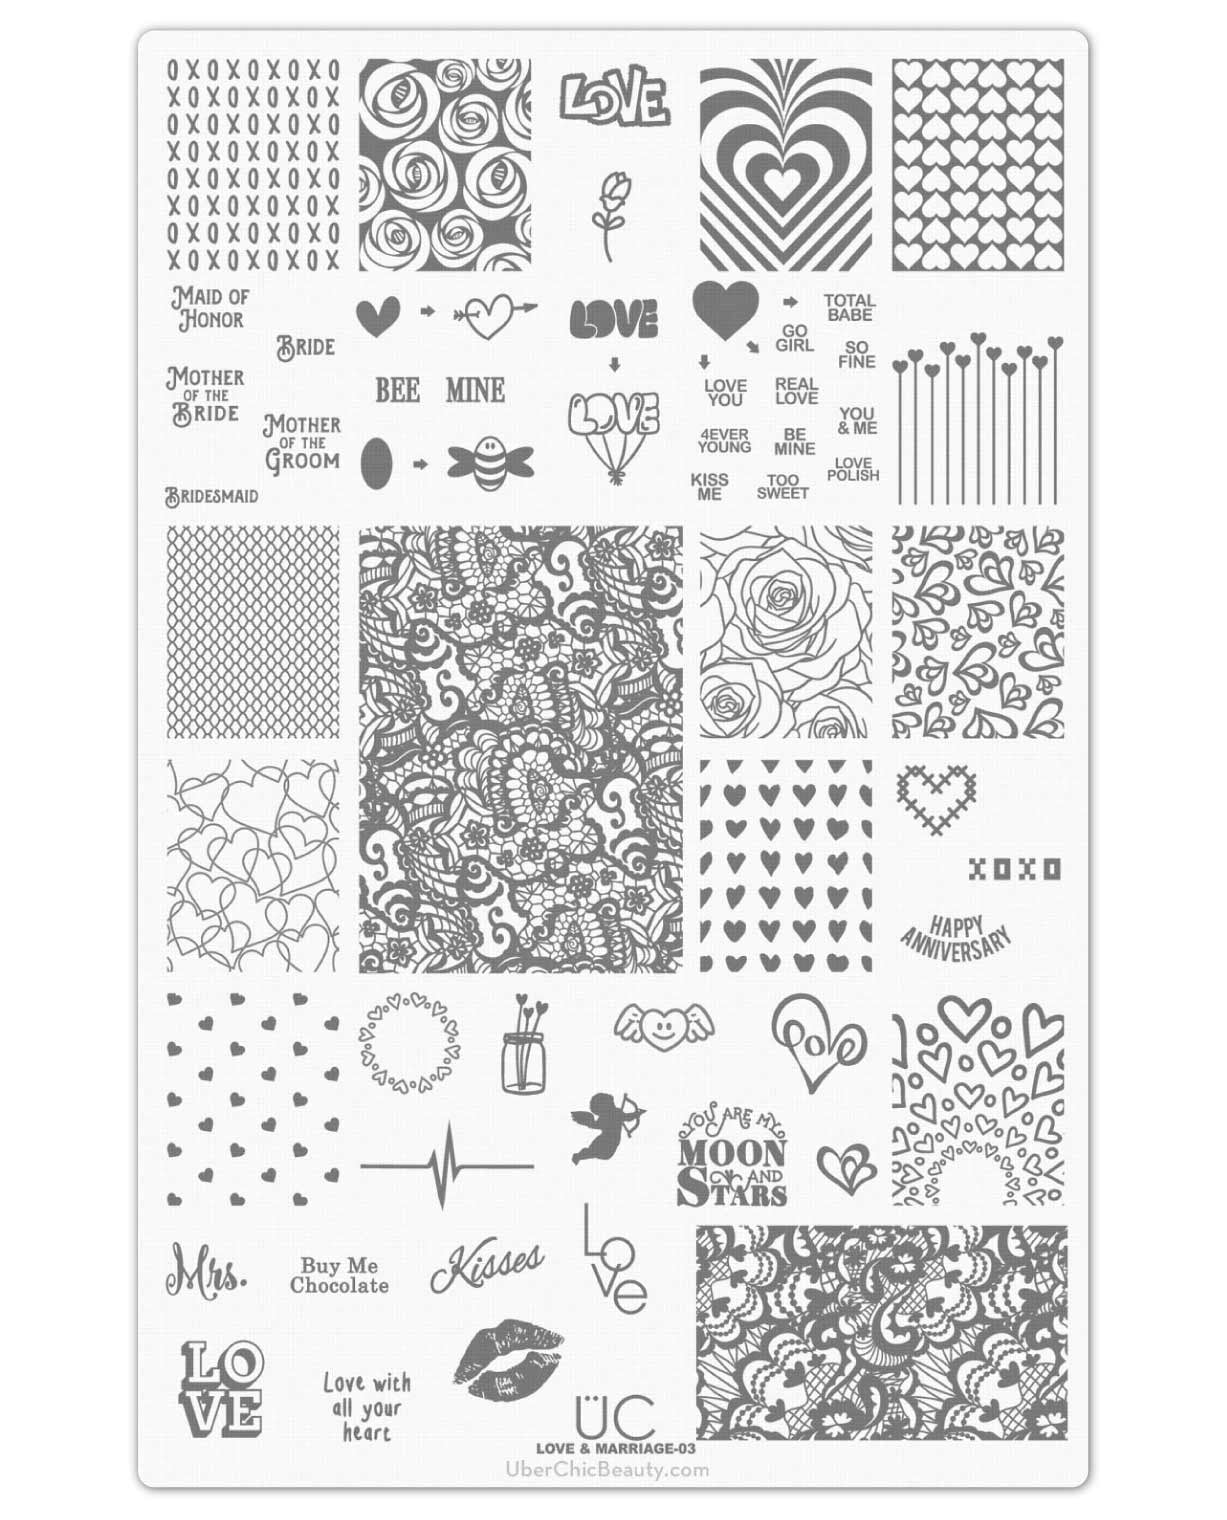 Love and Marriage-03 - UberChic Beauty Nail Stamping Plate